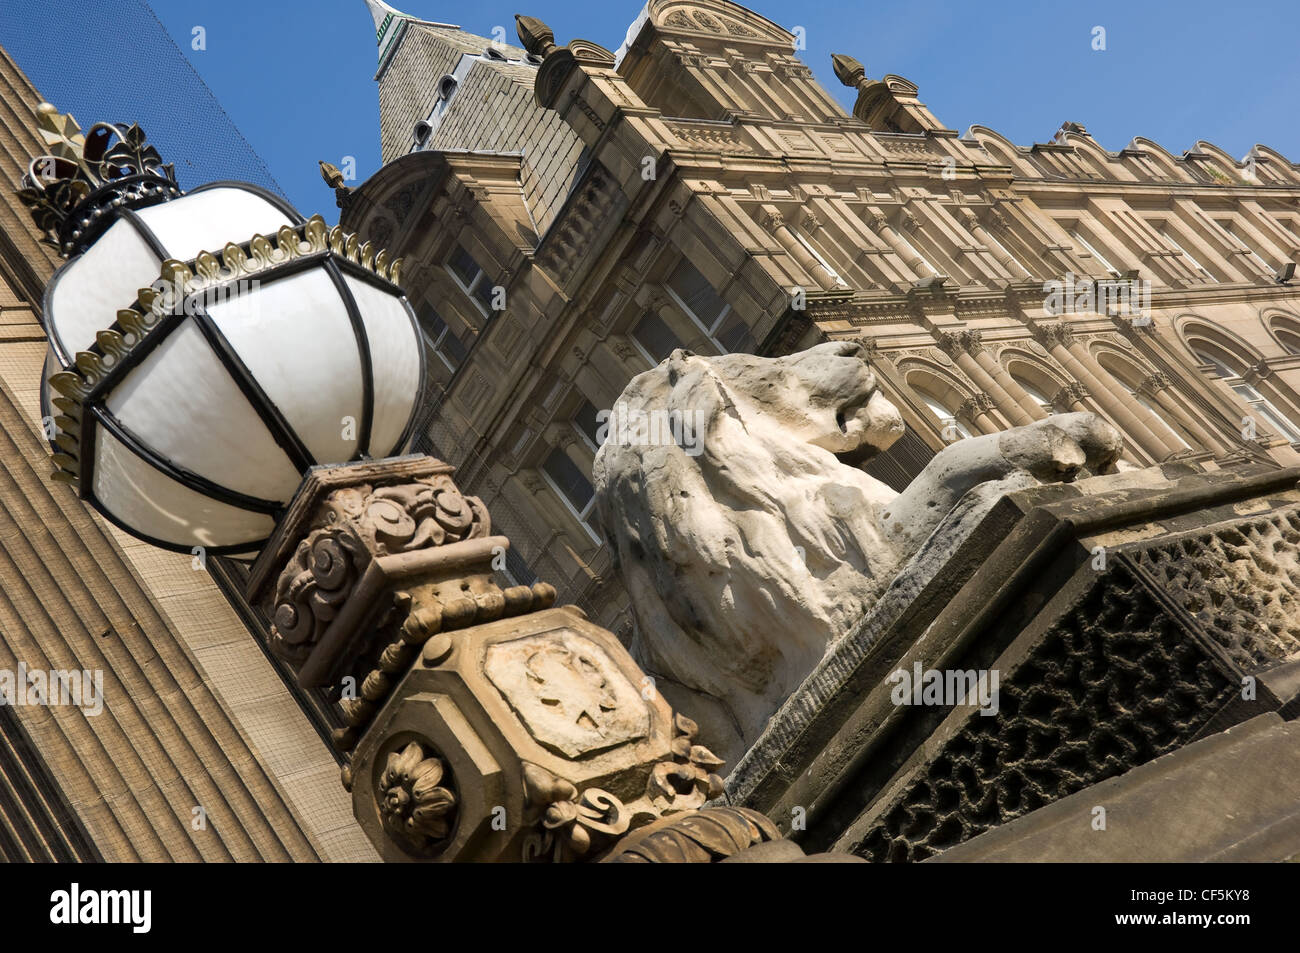 A carved lion on a plinth and ornate lamp outside Leeds Town Hall on The Headrow, the main street in Leeds City - Stock Image